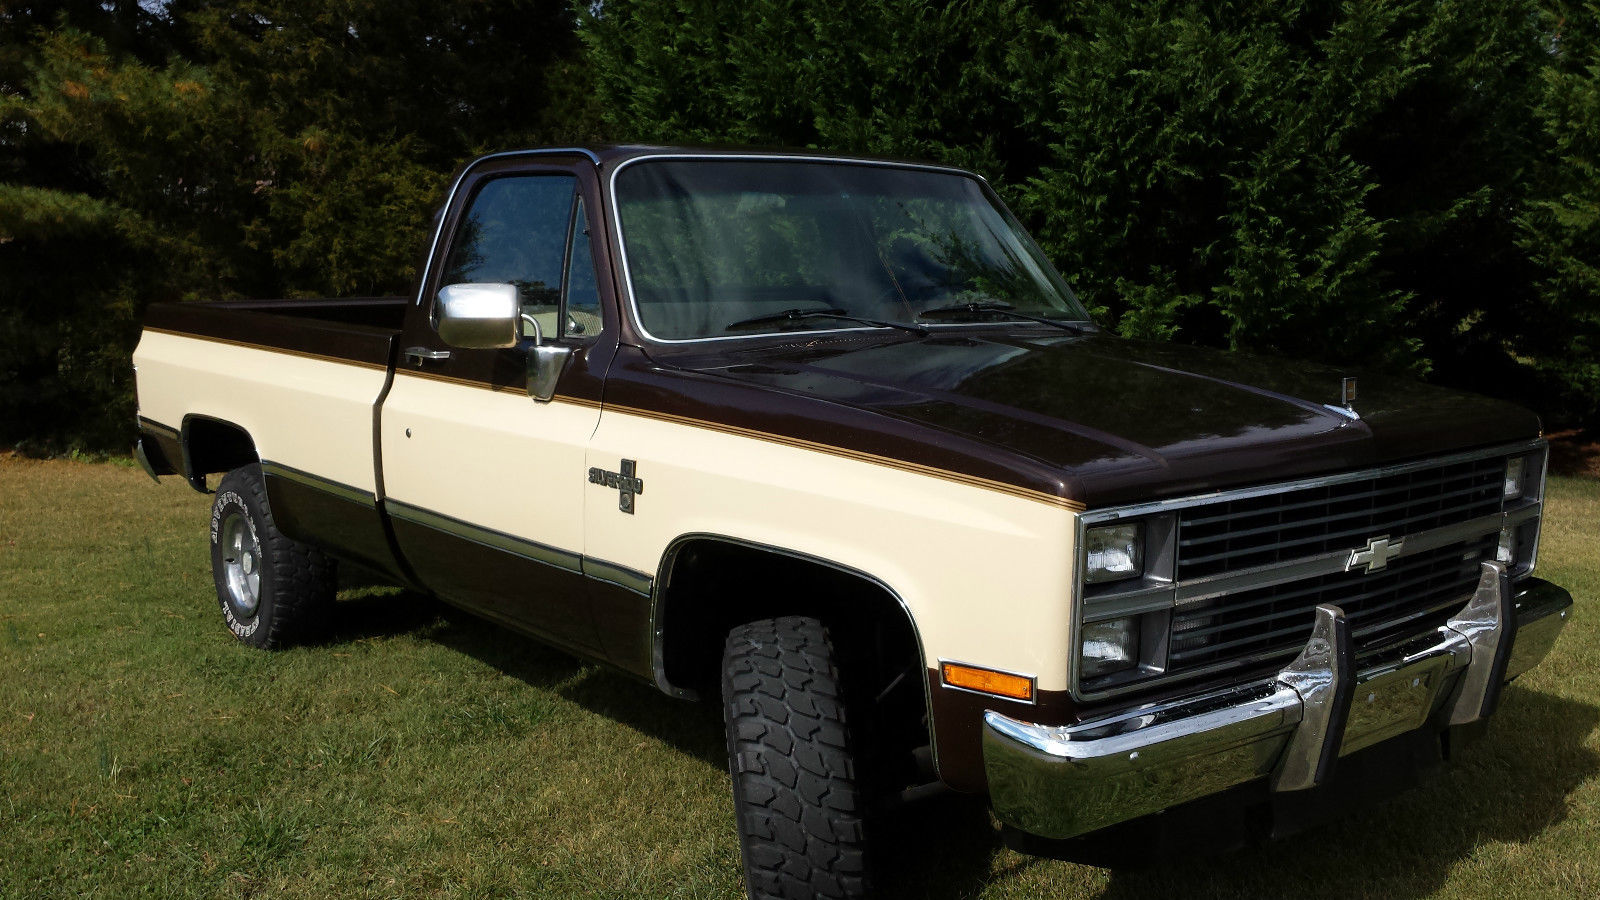 1984 chevrolet k10 custom standard cab pickup 2 door 5 7l classic chevrolet c k pickup 1500. Black Bedroom Furniture Sets. Home Design Ideas